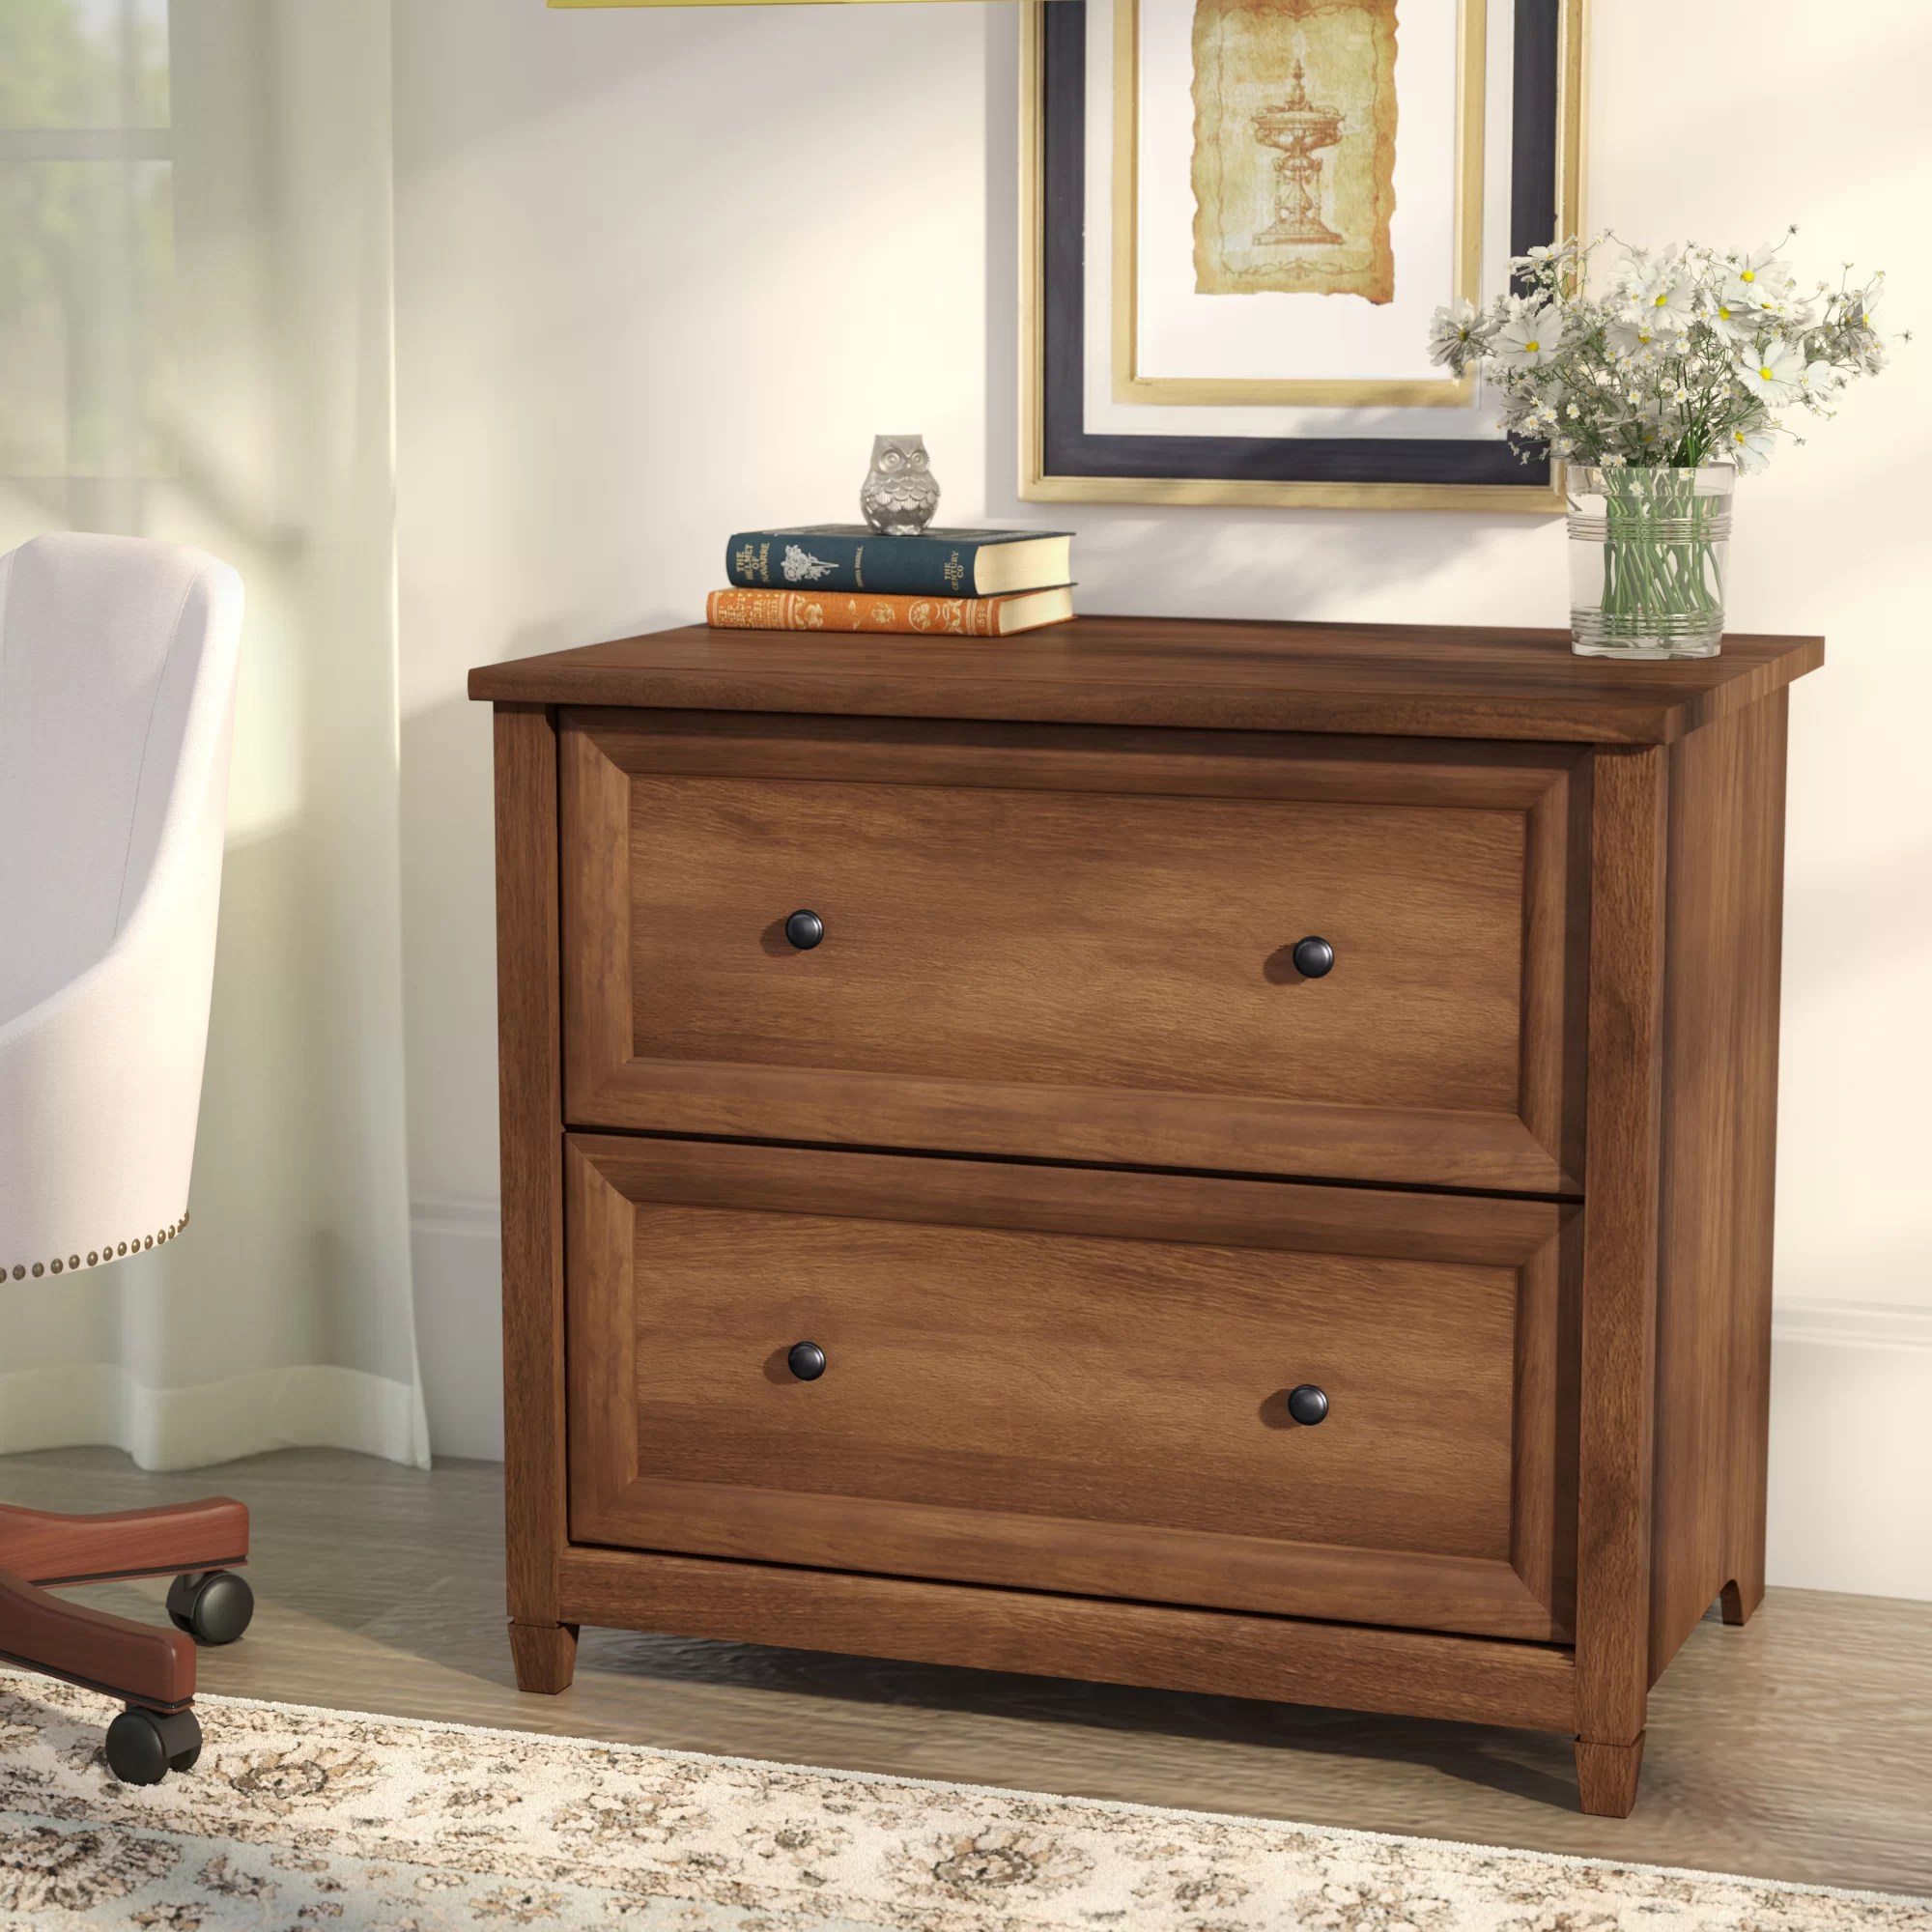 Cabinet Drawers Lamantia 2 Drawer Lateral Filing Cabinet